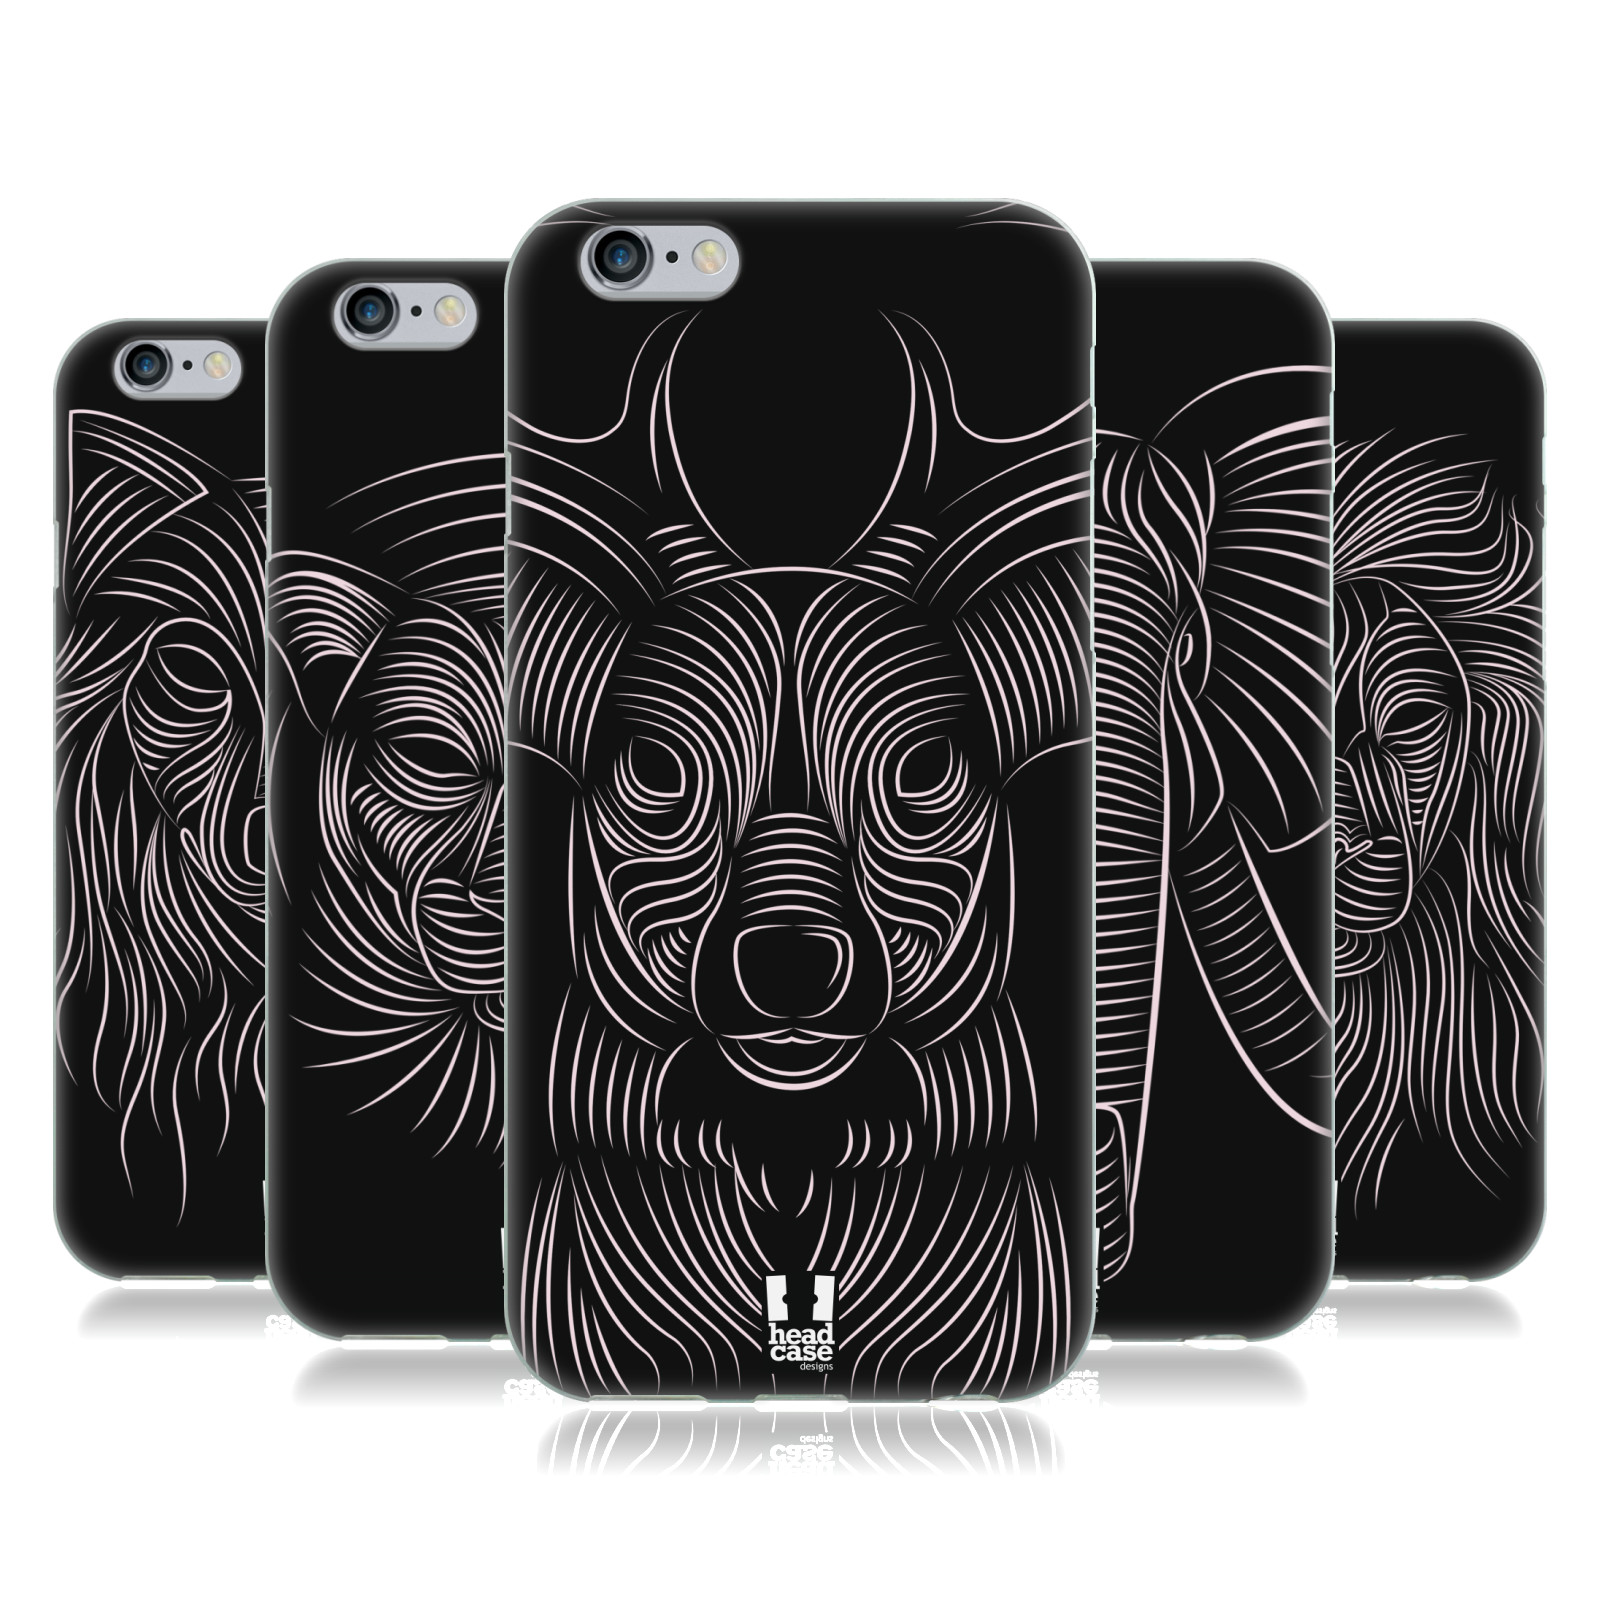 HEAD-CASE-DESIGNS-PIN-STRIPE-ANIMALS-SOFT-GEL-CASE-FOR-APPLE-iPHONE-PHONES